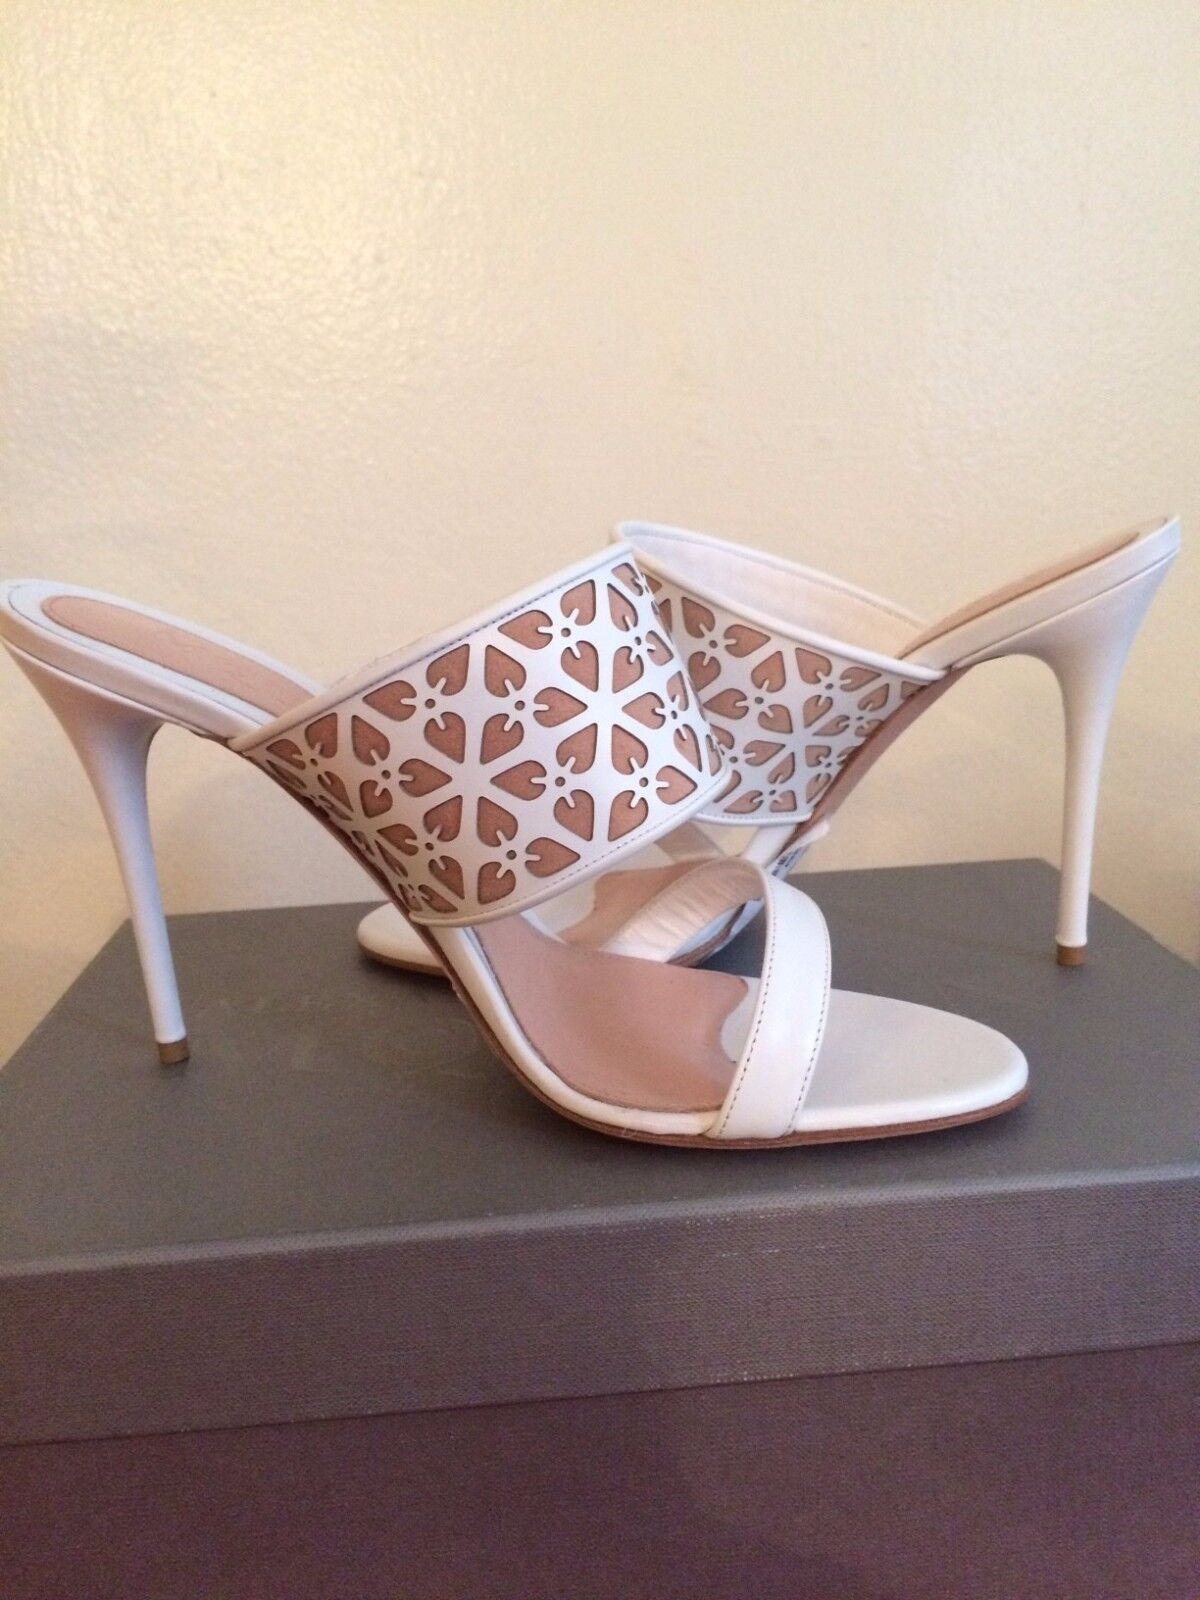 NEW,Alexander MQueen shoes high heels, SZ 40, white leather, made in